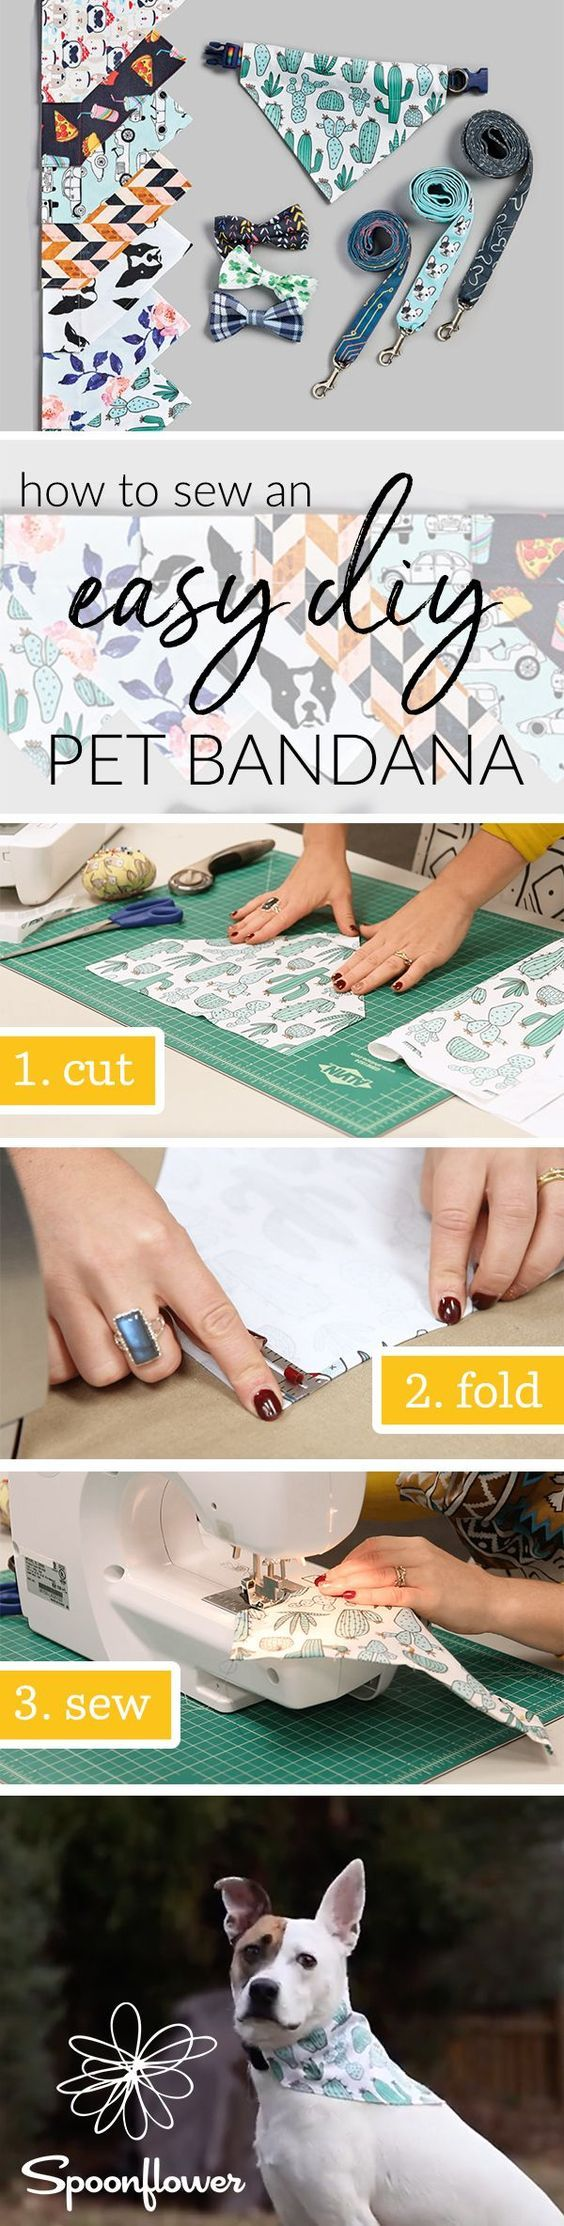 See How to Sew an Easy Pet Bandana | Video Tutorial – Want to add a little flair or a splash of color to your pet's collar? As easy as they are cute, this DIY pet bandana is guaranteed to have you and your pups jumping for joy. And with afree downloadable PDF patternand video tutorial, you'll be surprised how fast this project sews up. Grab your favorite fat quarter of fabric and get started! #diypet #sewing #diy #tutorial #diypetproject #pets #doglover #dressyourdog #dogstyle – Patrician